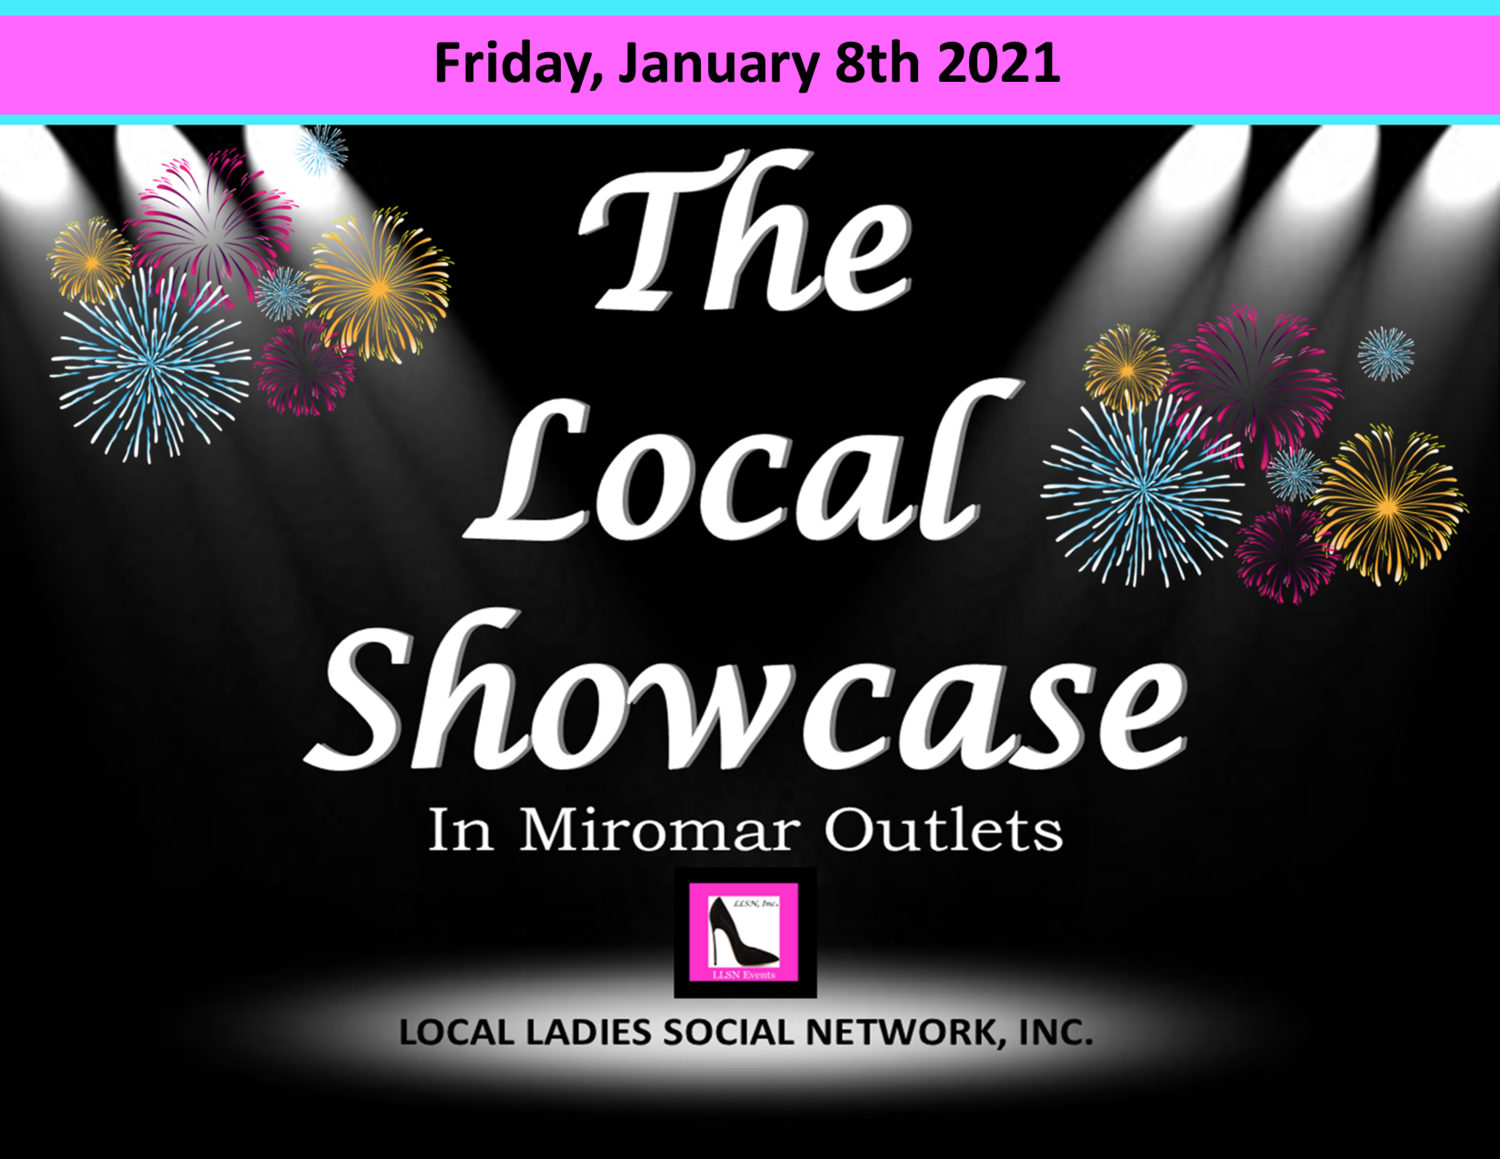 Friday, January 8th, 2021 11am-7pm